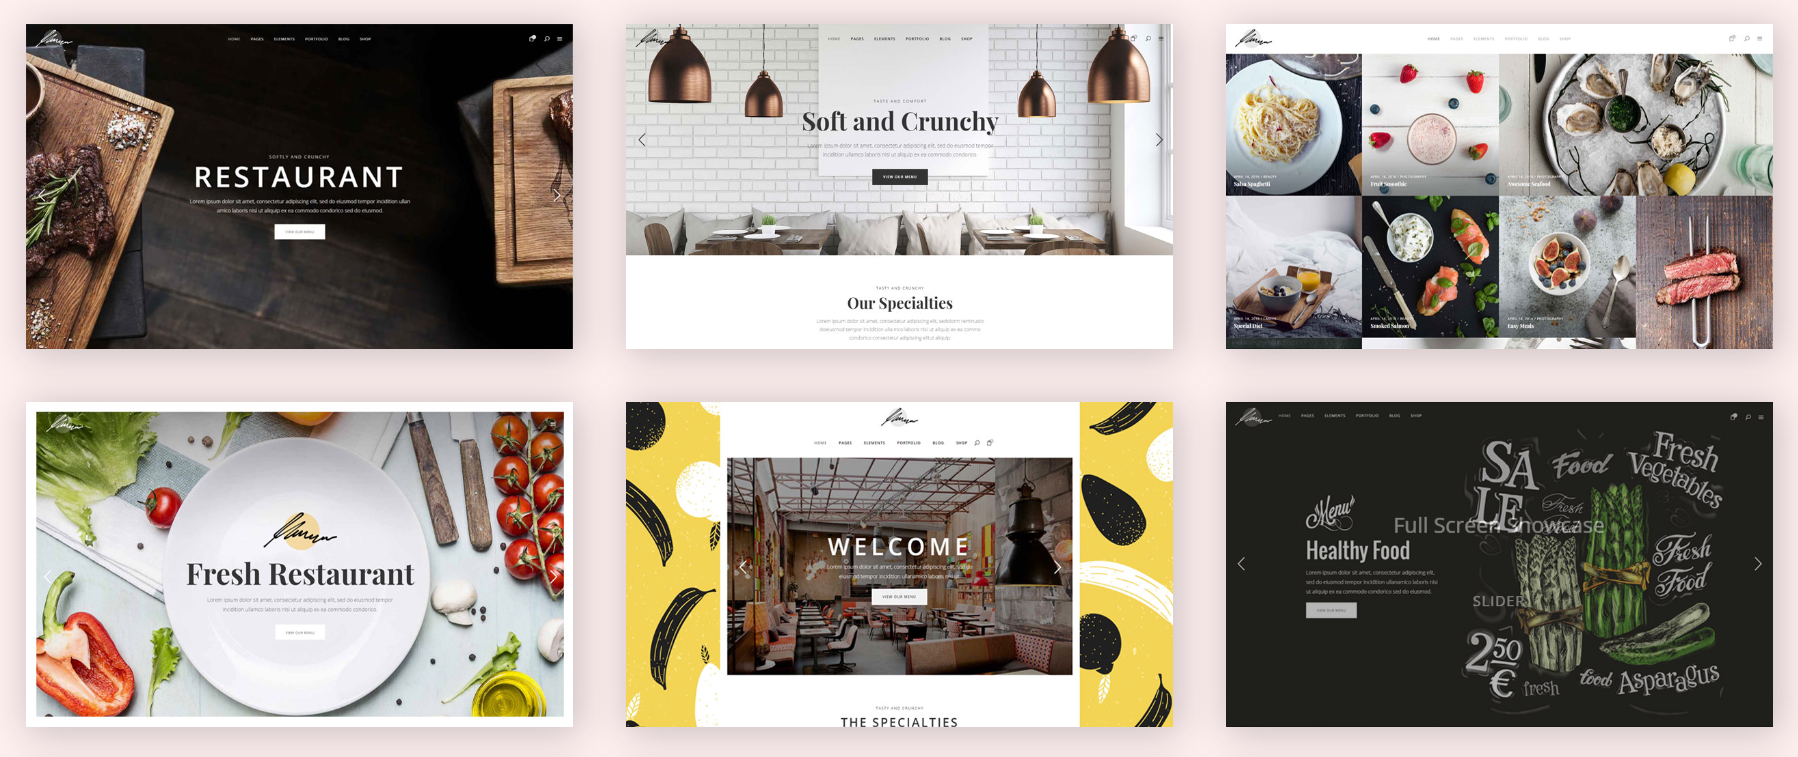 Savory restaurant WordPress theme demos